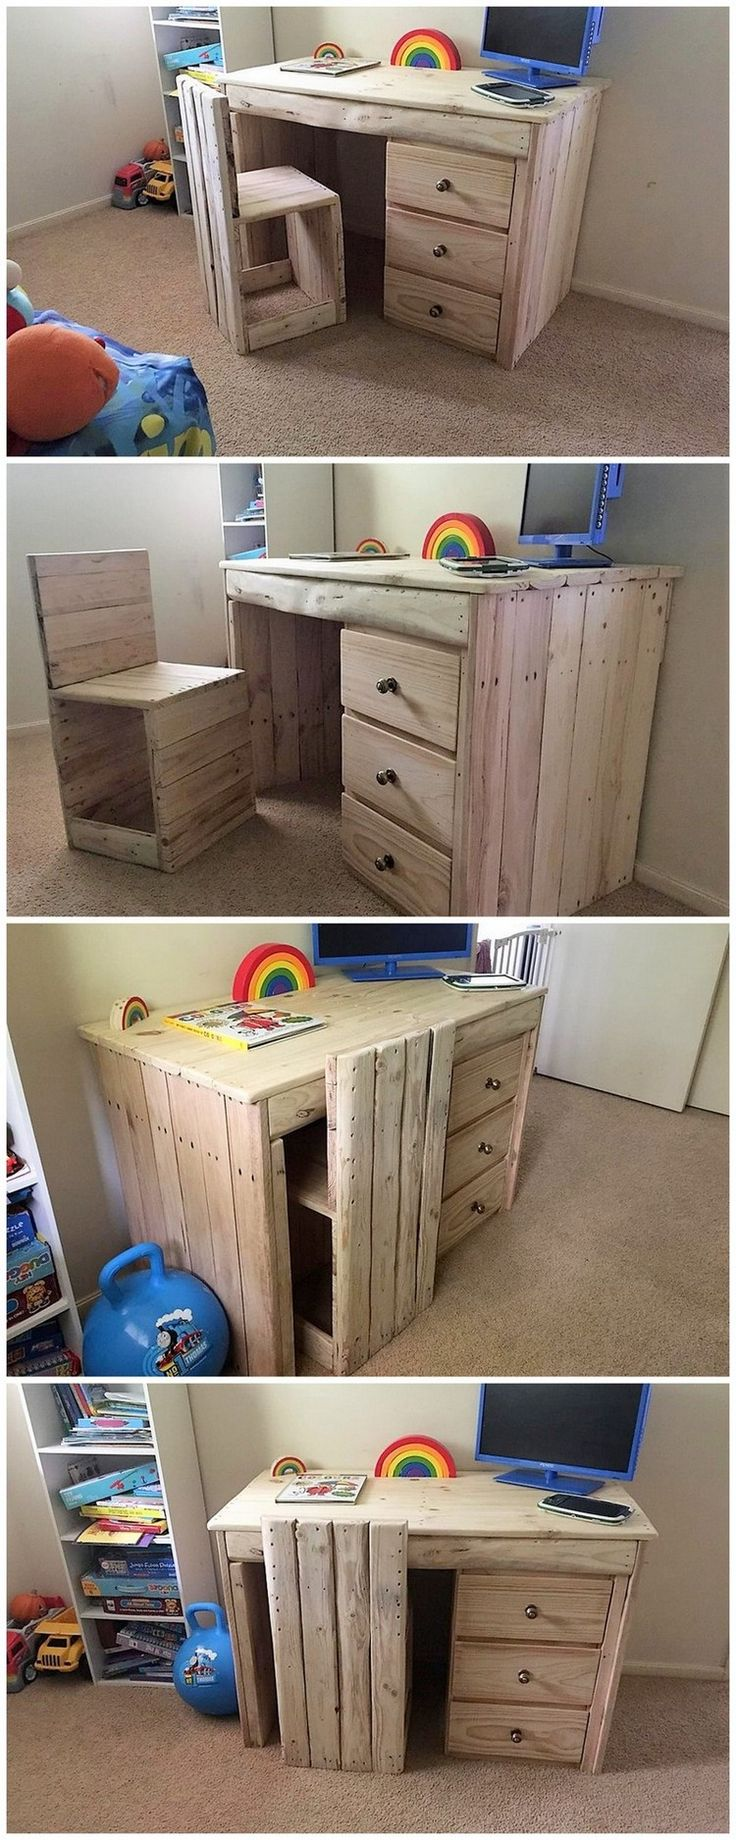 At the end we would once again come up with the unique wood pallet computer or study table idea of table for you. In this image, we have come about with the step by step discussion of the wood pallet computer or study table design that would make your task a lot easy in crafting.